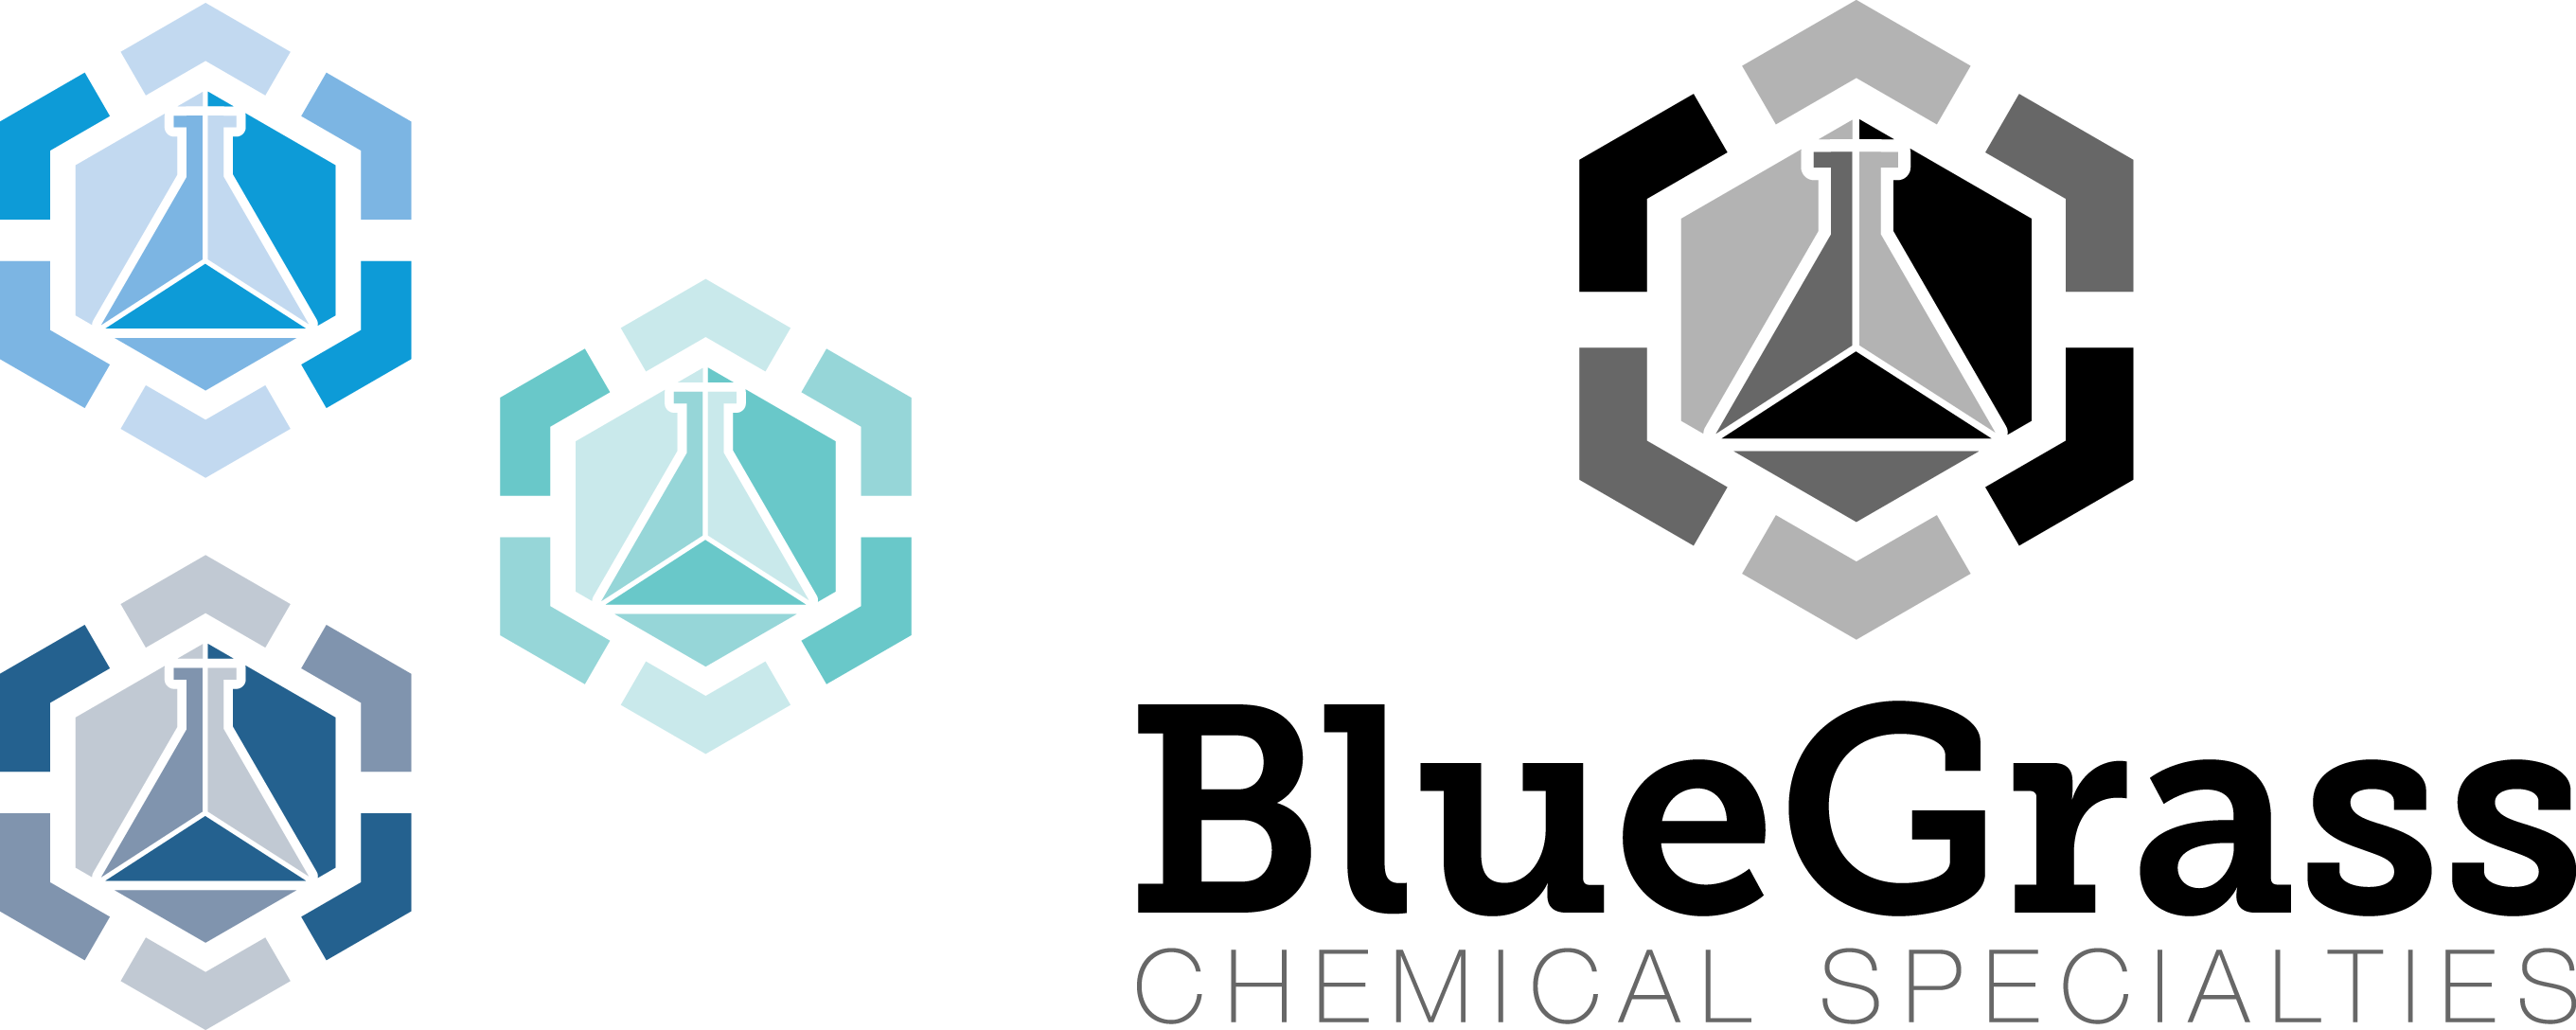 Blue Grass Chemical logo concepting